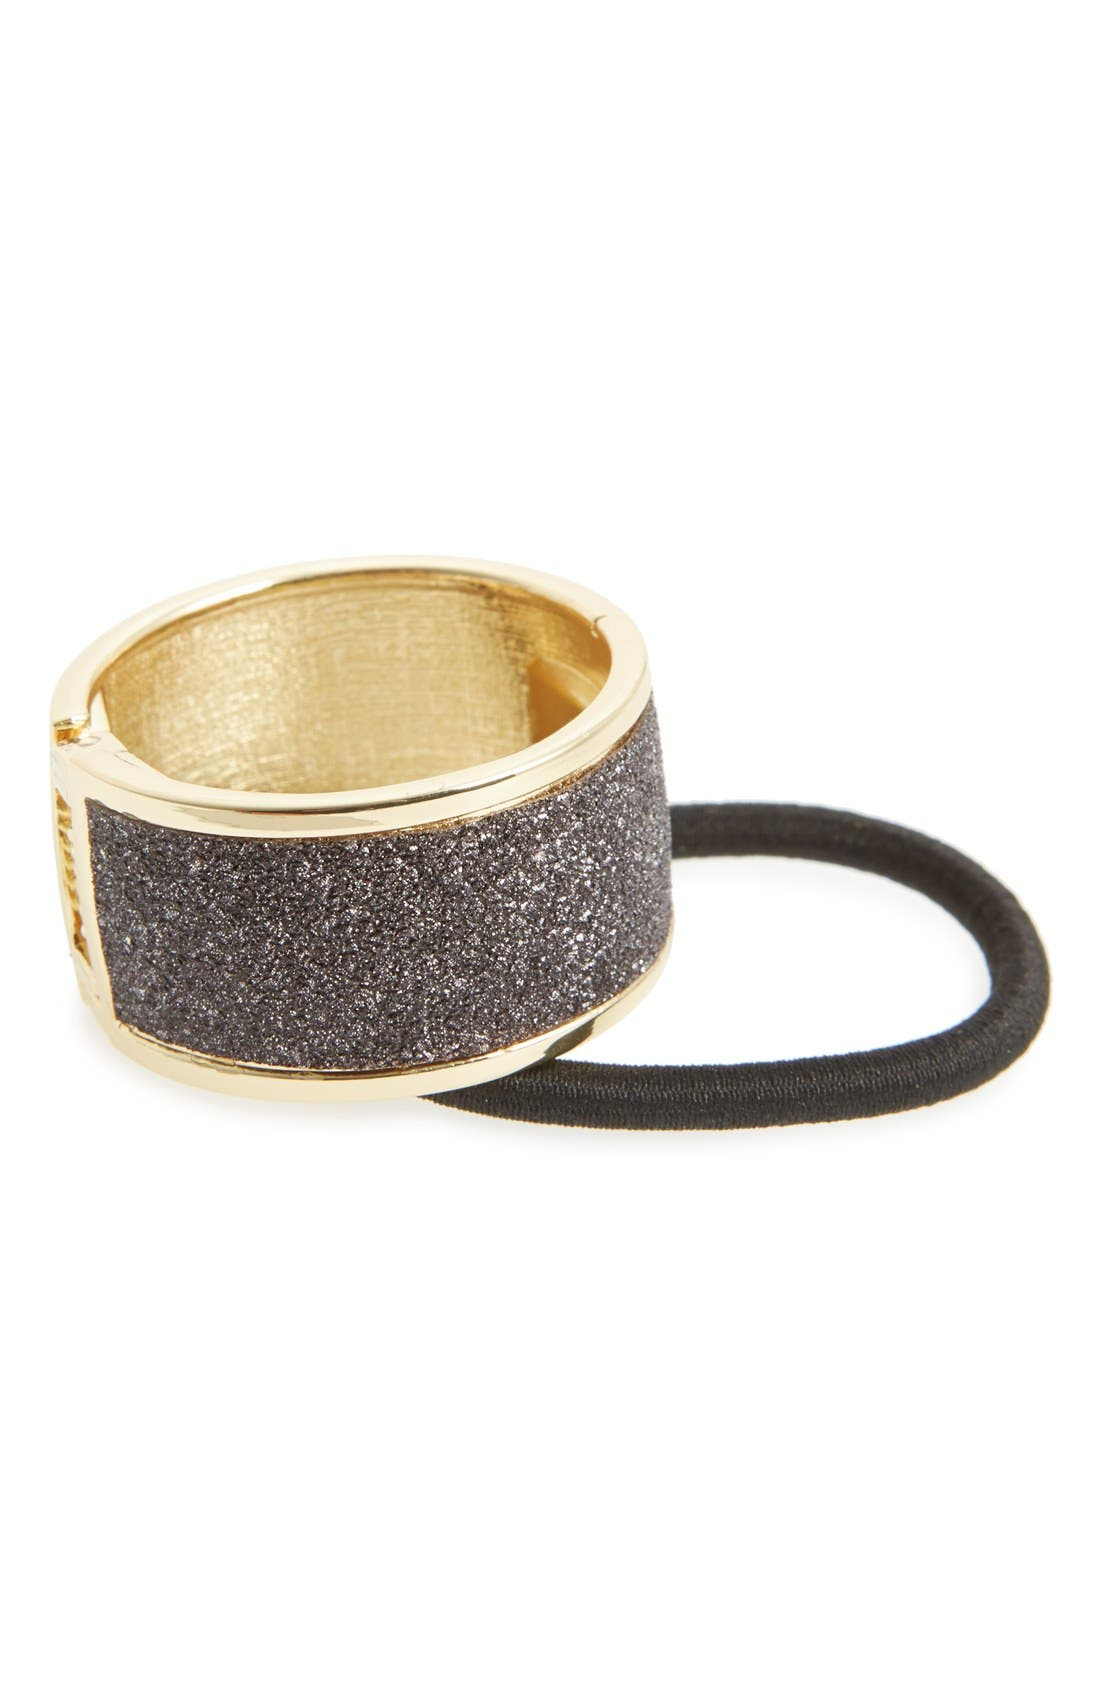 Alternate Image 1 Selected - L. Erickson Glitter Cuff Ponytail Holder